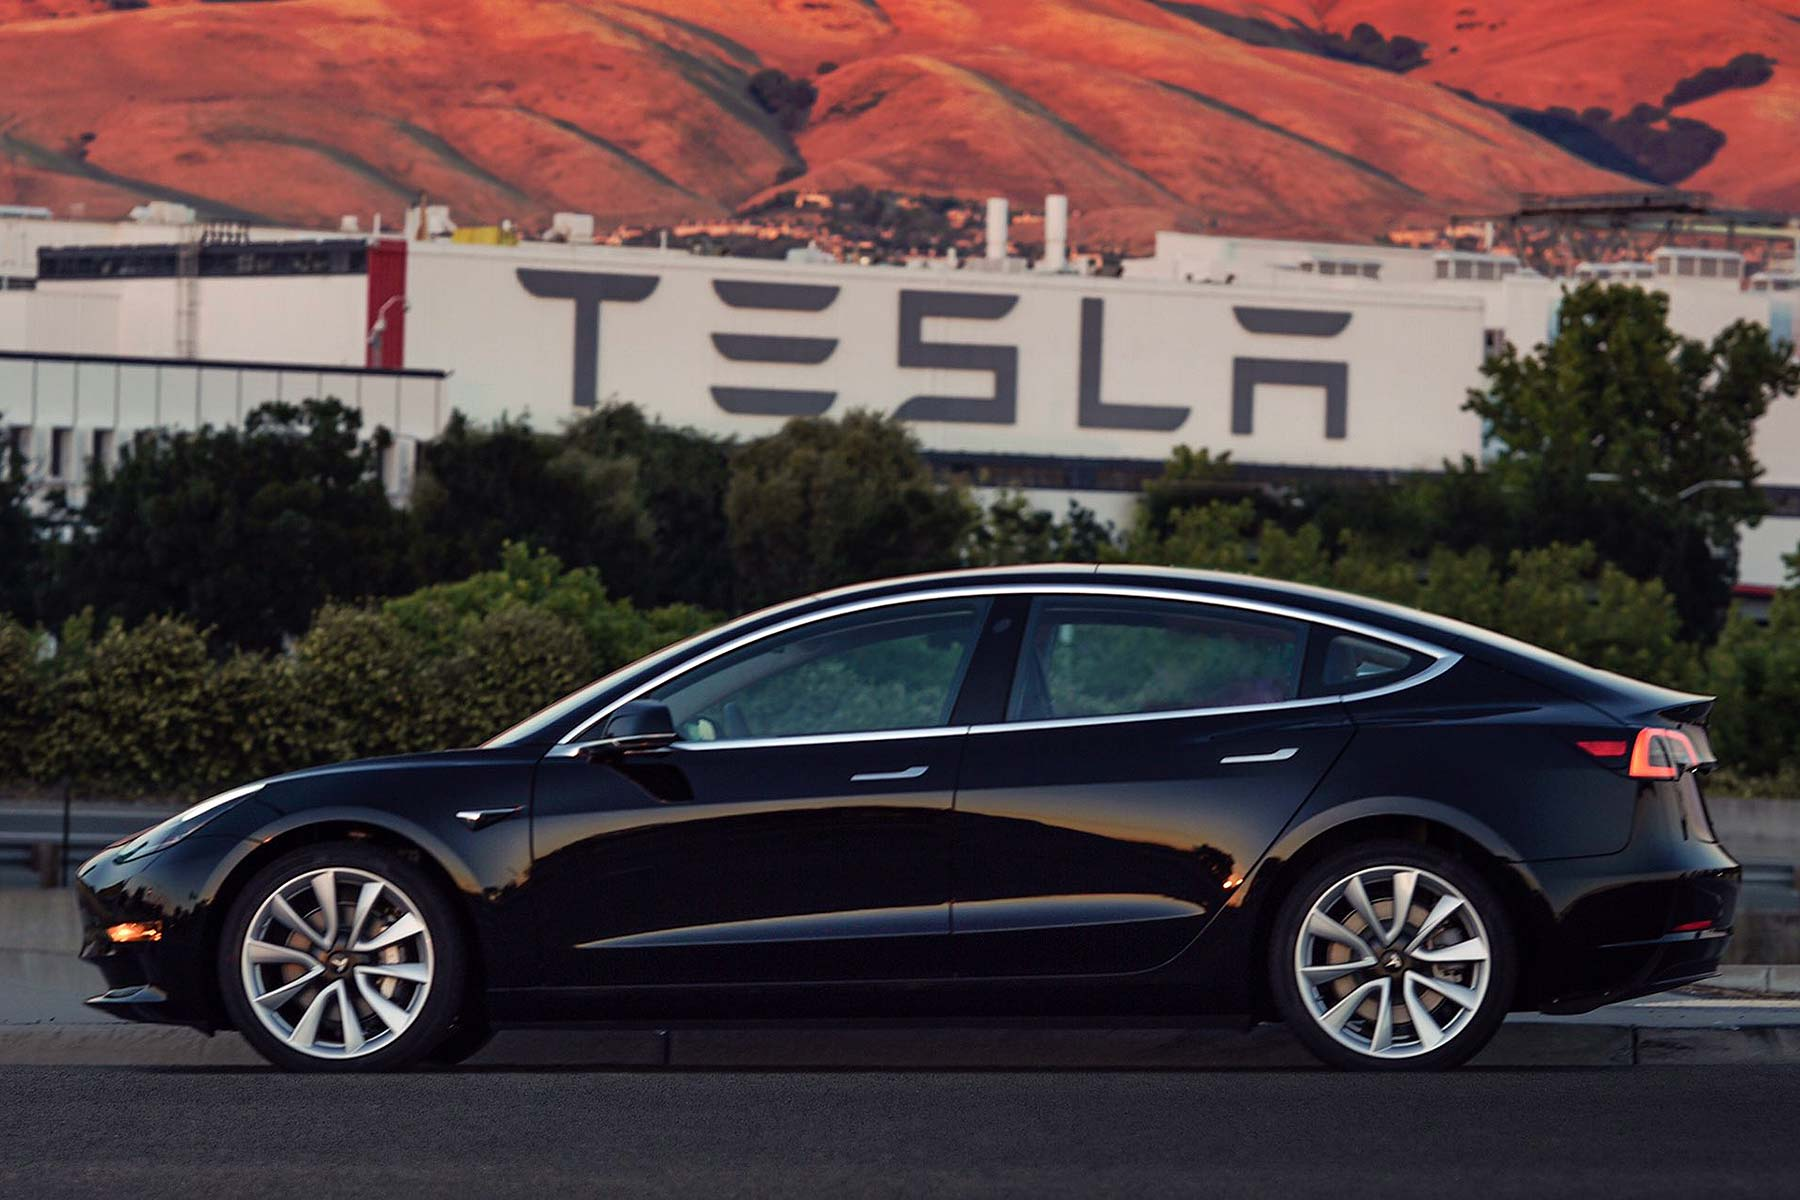 Tesla Model 3 1st production car